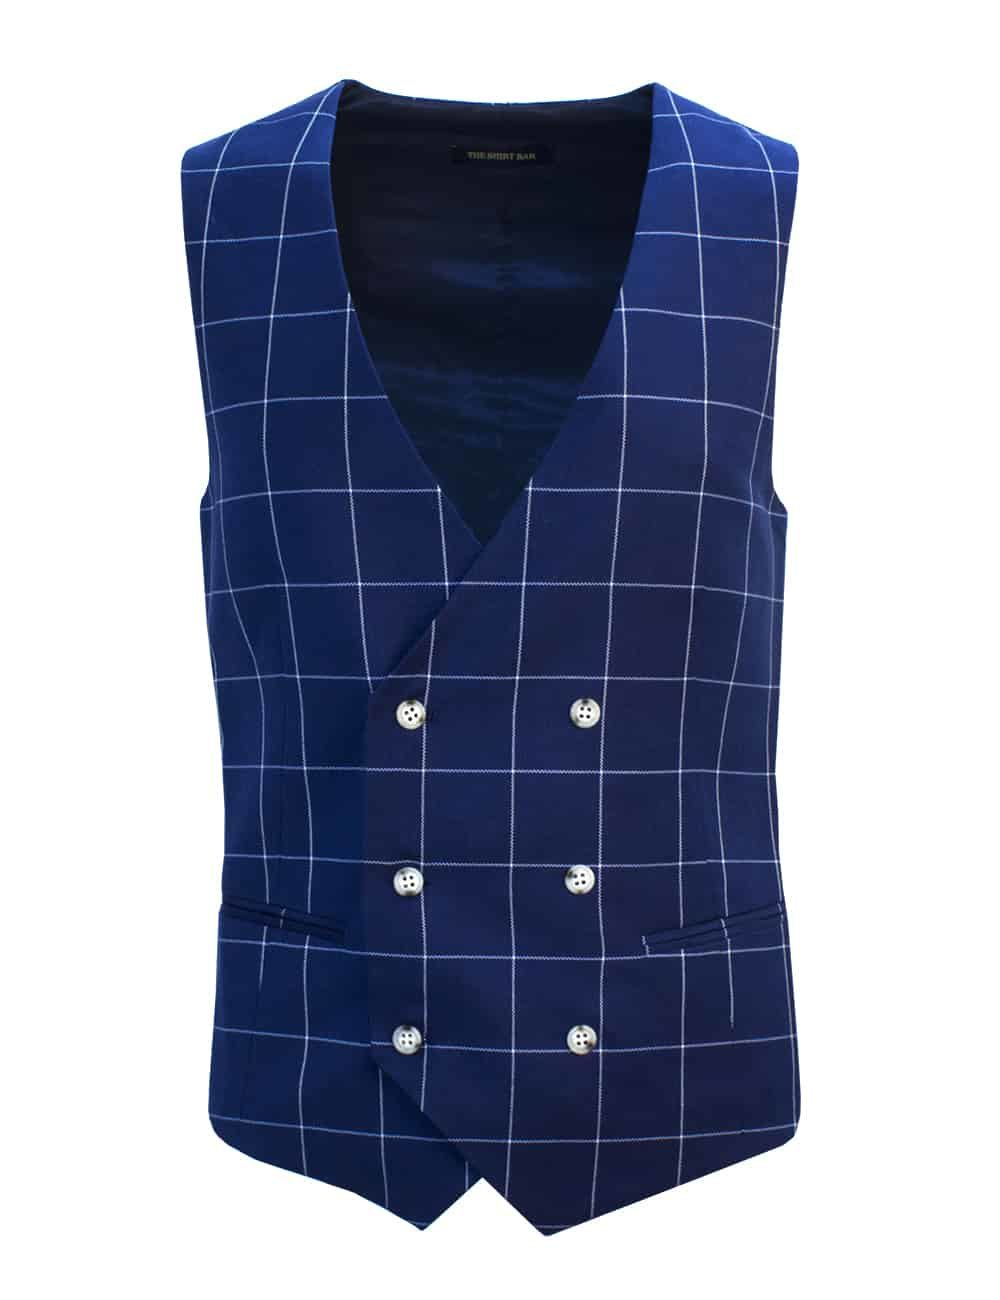 Tailored Fit Blue Checks Double Breasted Vest V2V2.1